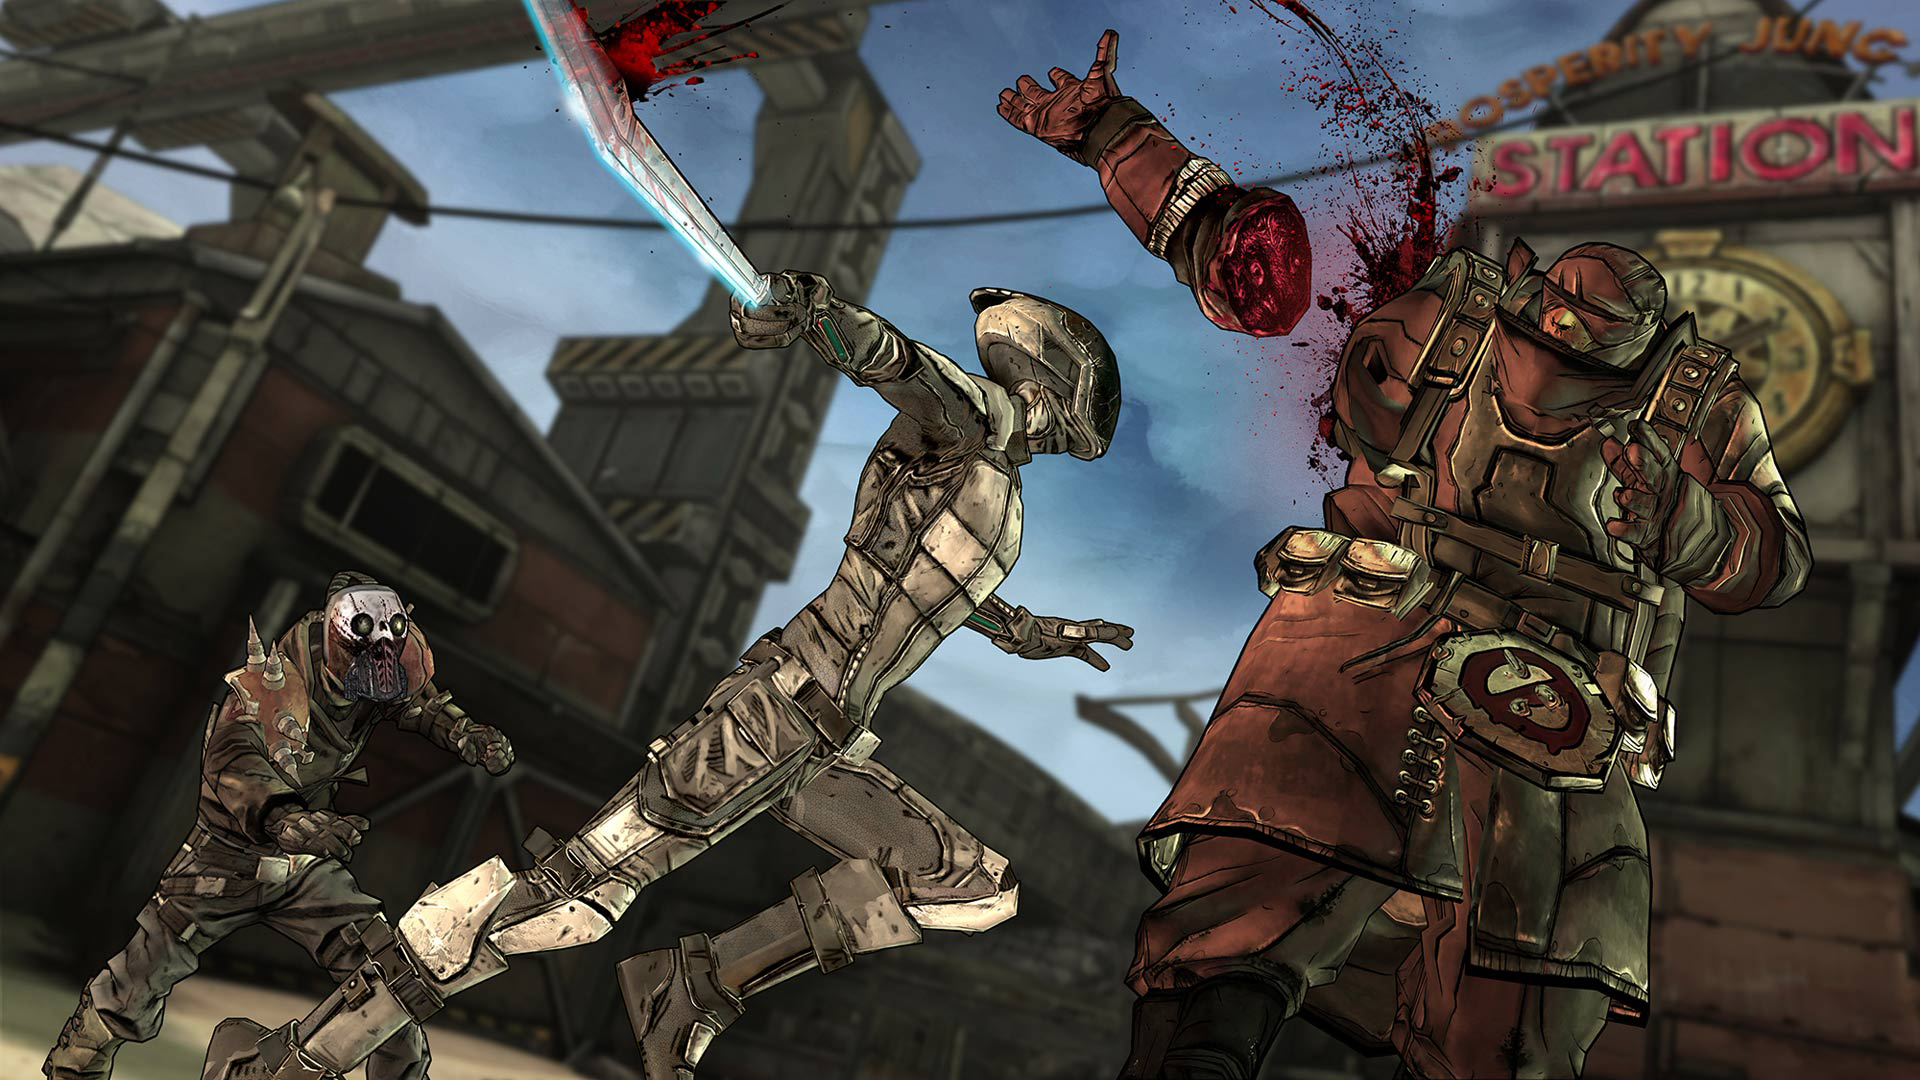 Tales from the Borderlands screenshot #3